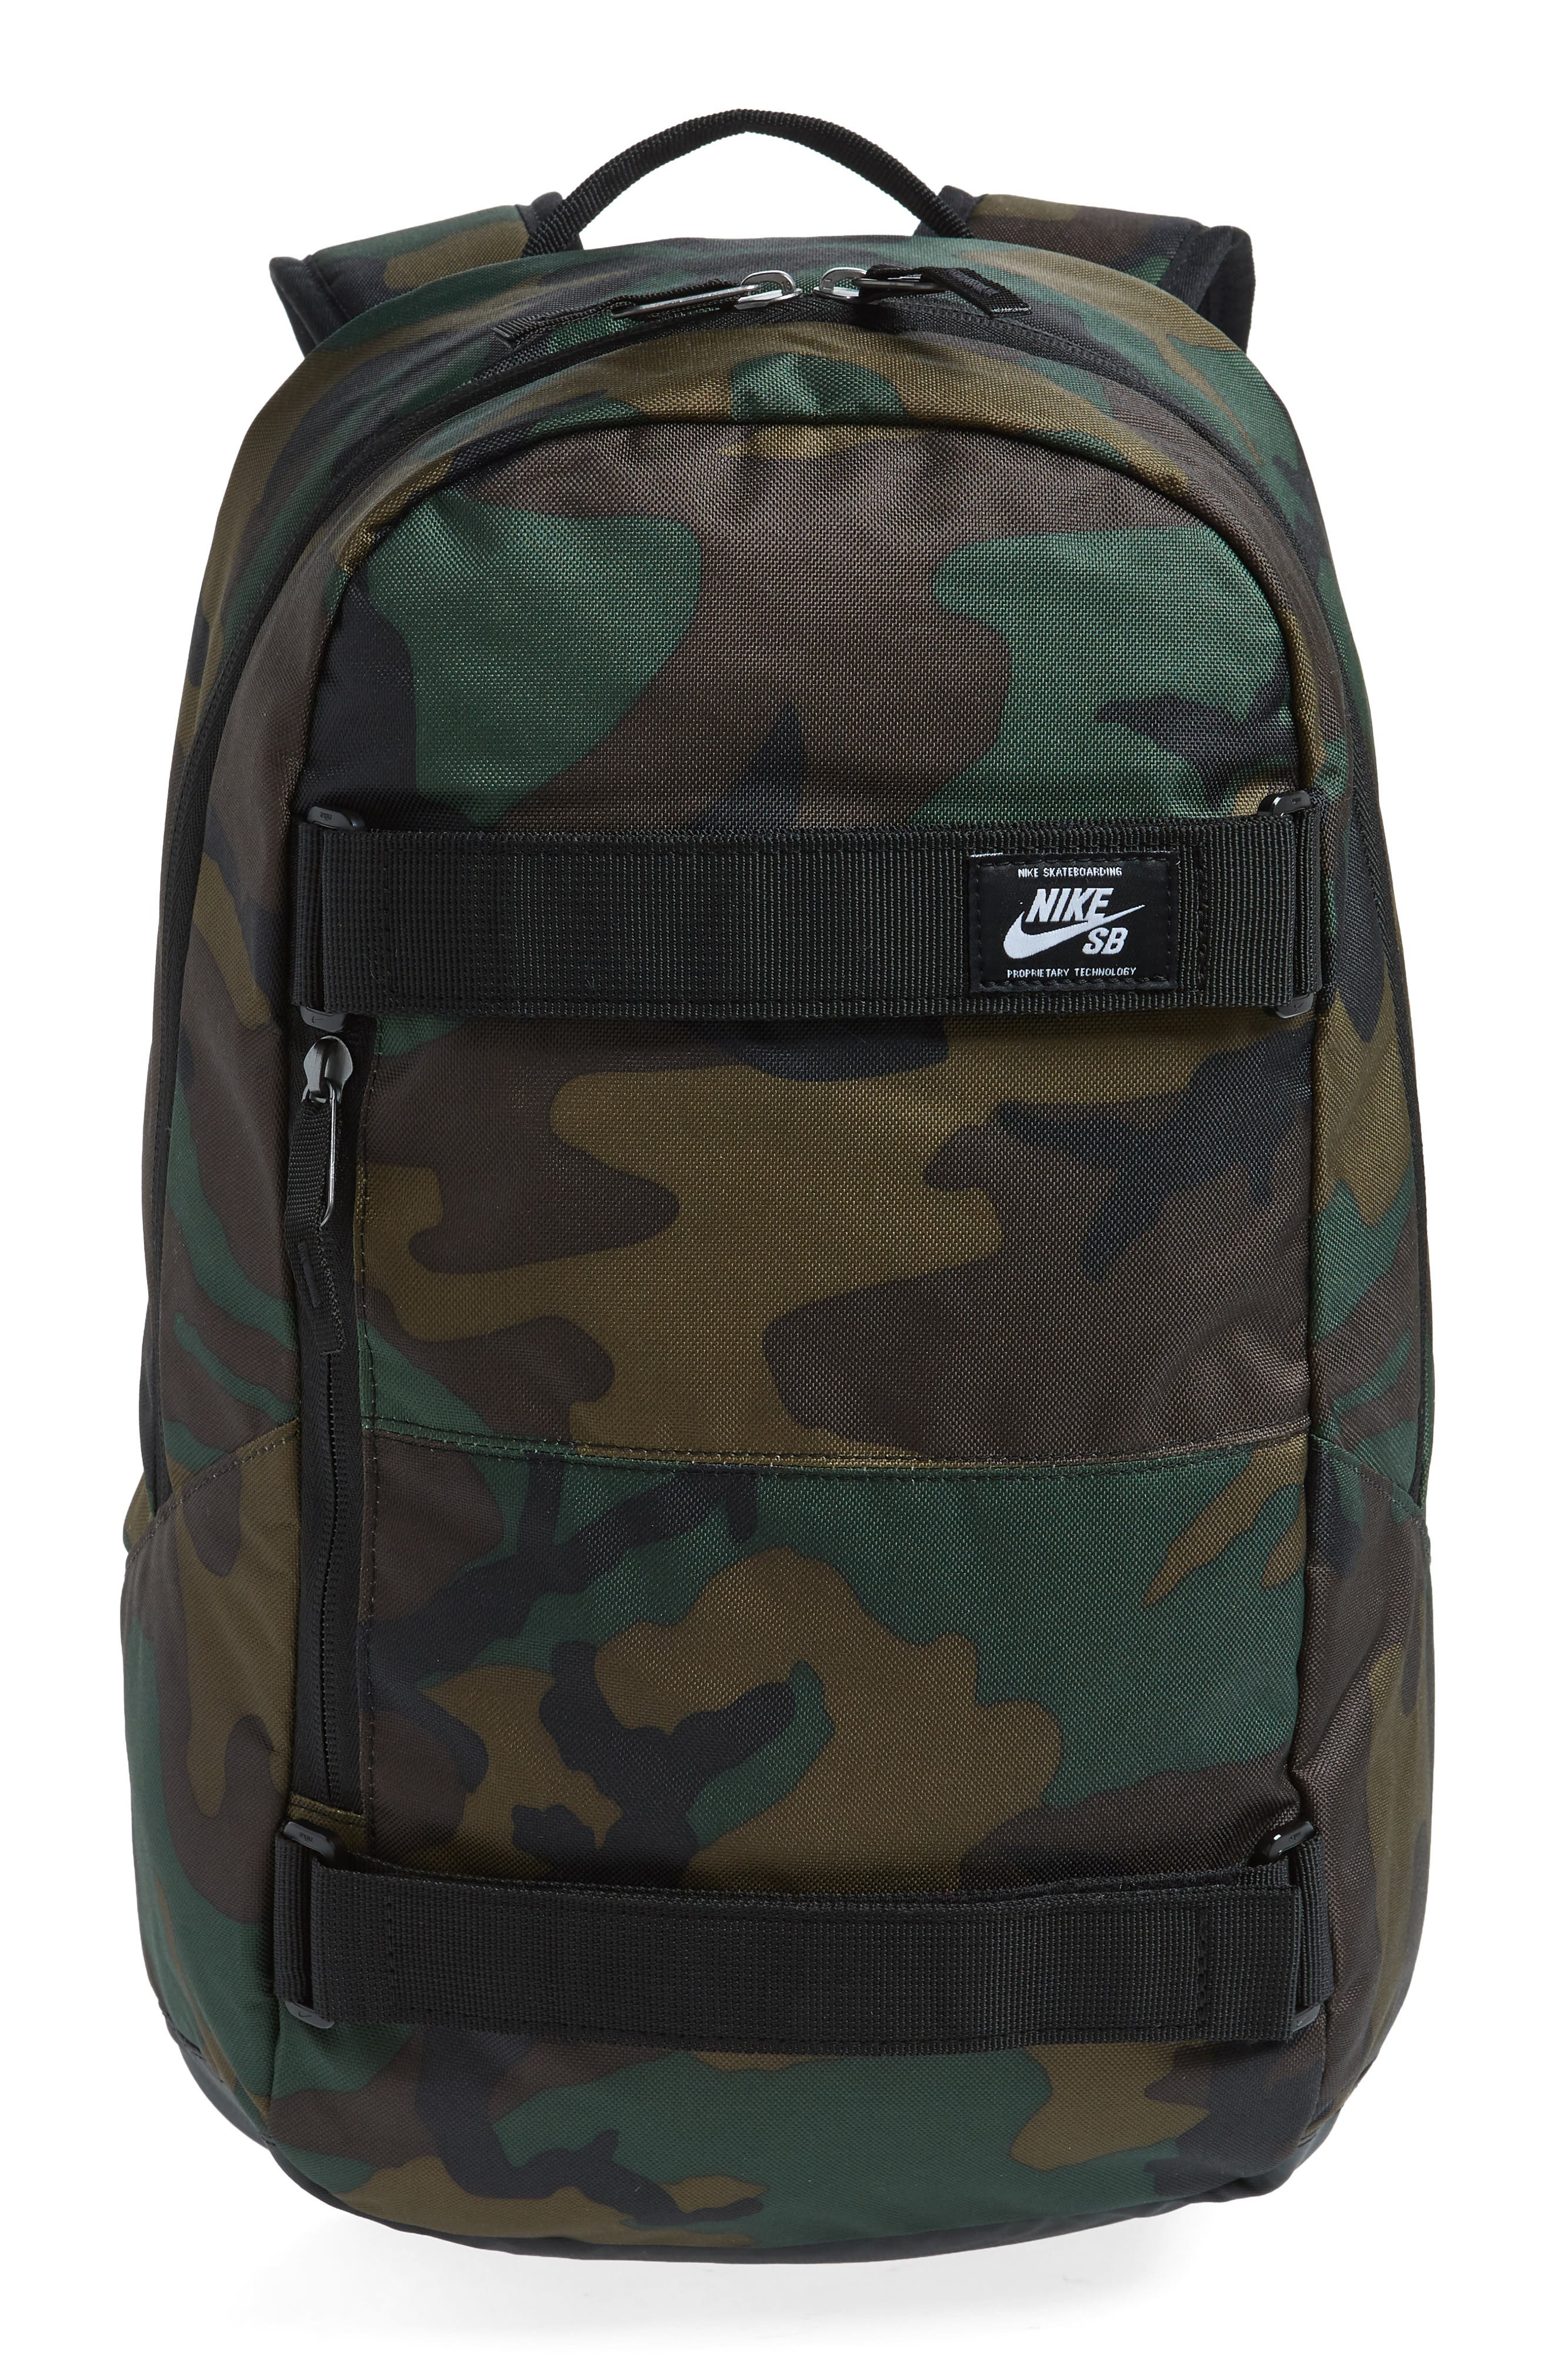 COURTHOUSE BACKPACK - GREEN